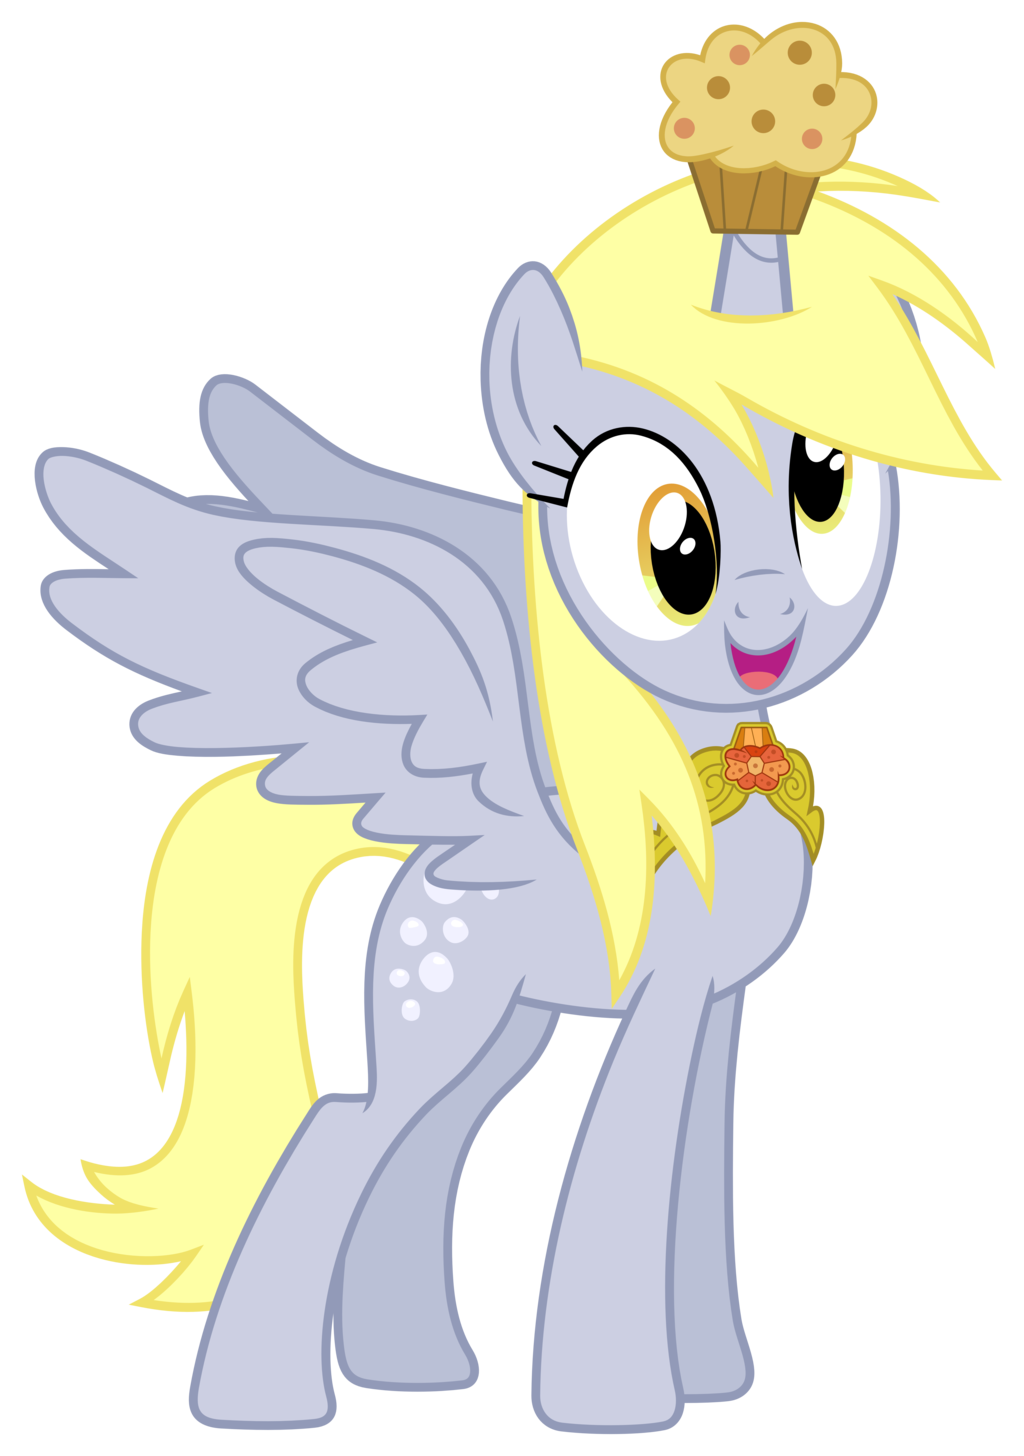 Muffin clipart adorable. Mlp derpy the princess